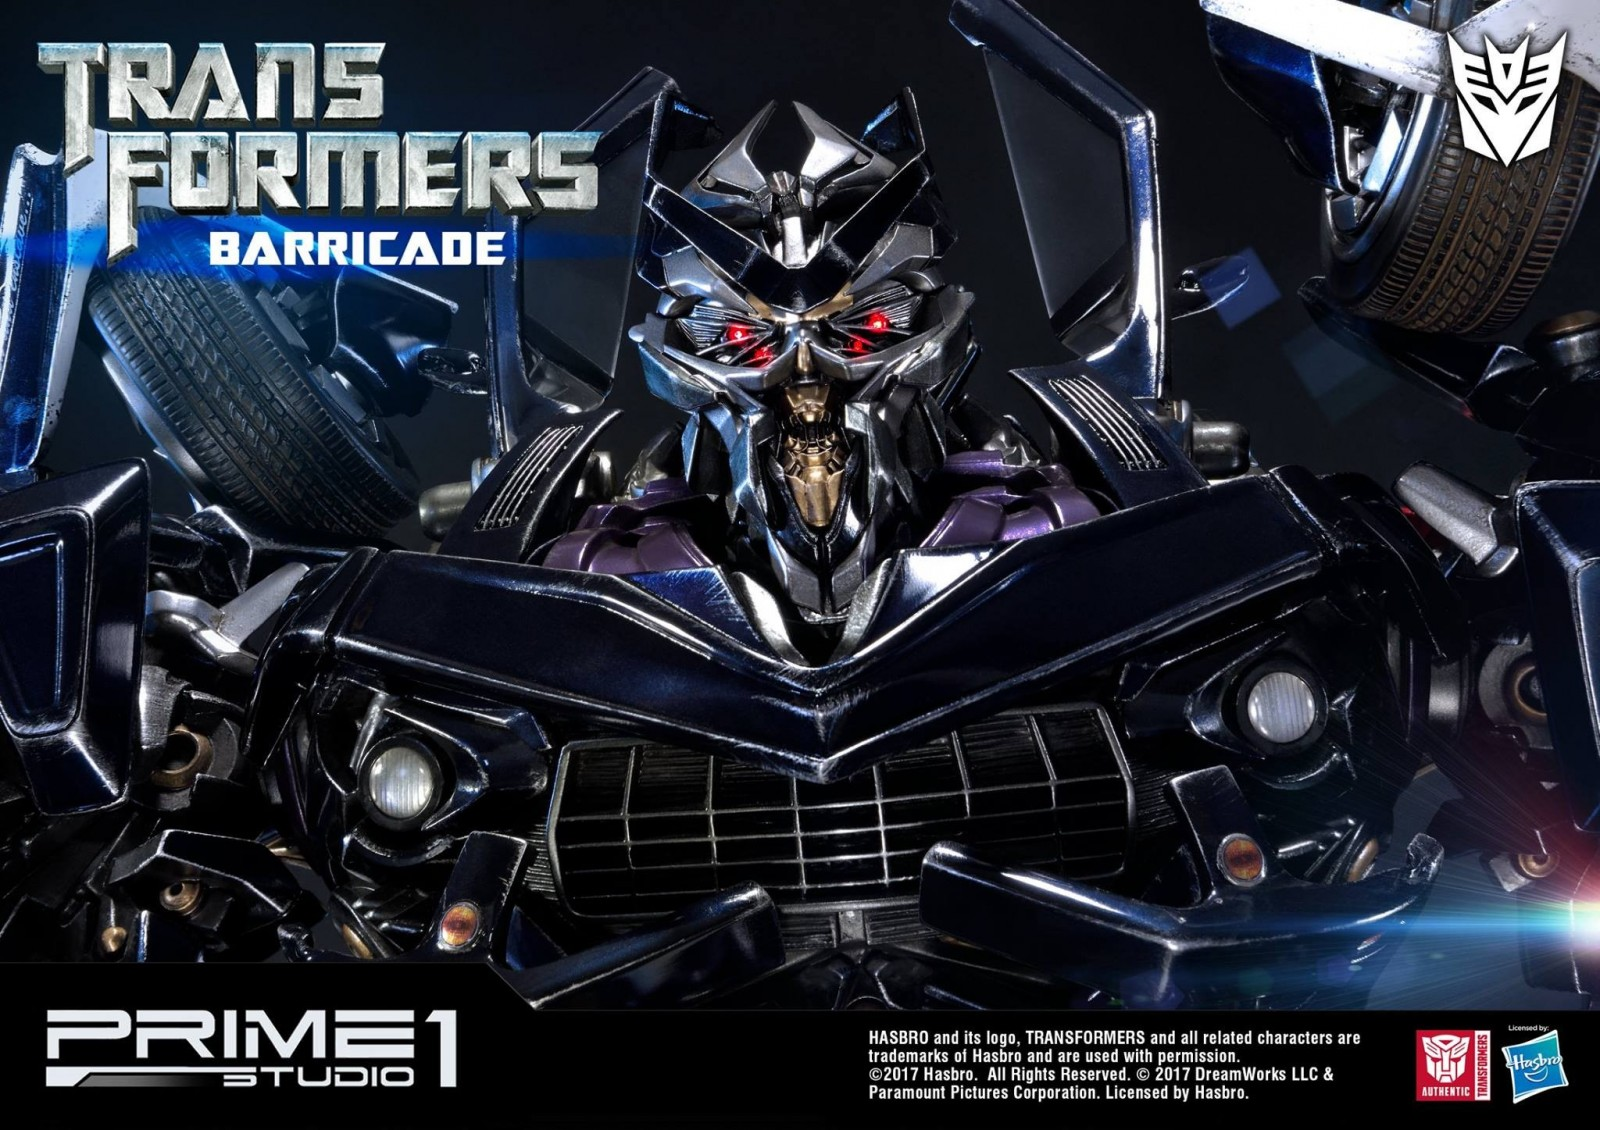 Transformers News: Prime 1 Studio Transformers MMTFM-15 Barricade Images